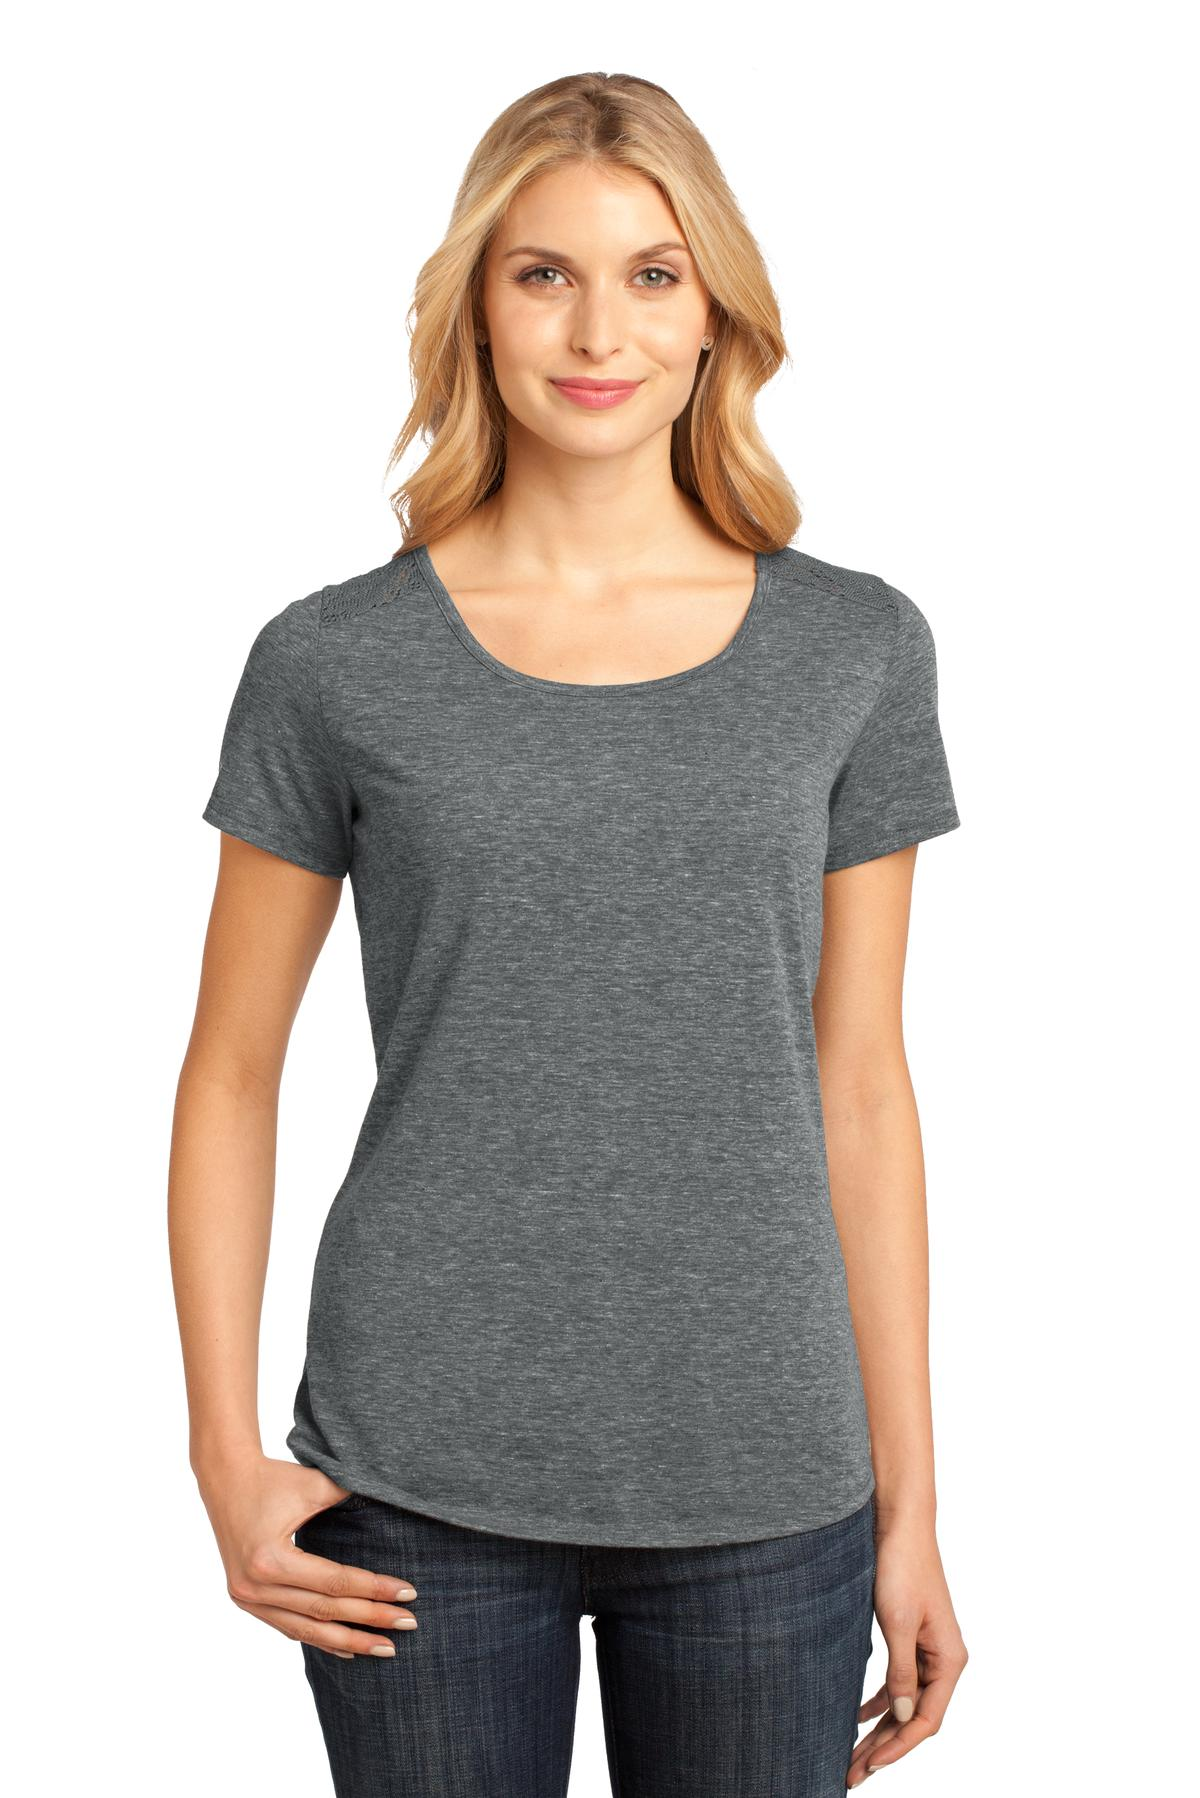 Grey Womens Shirt